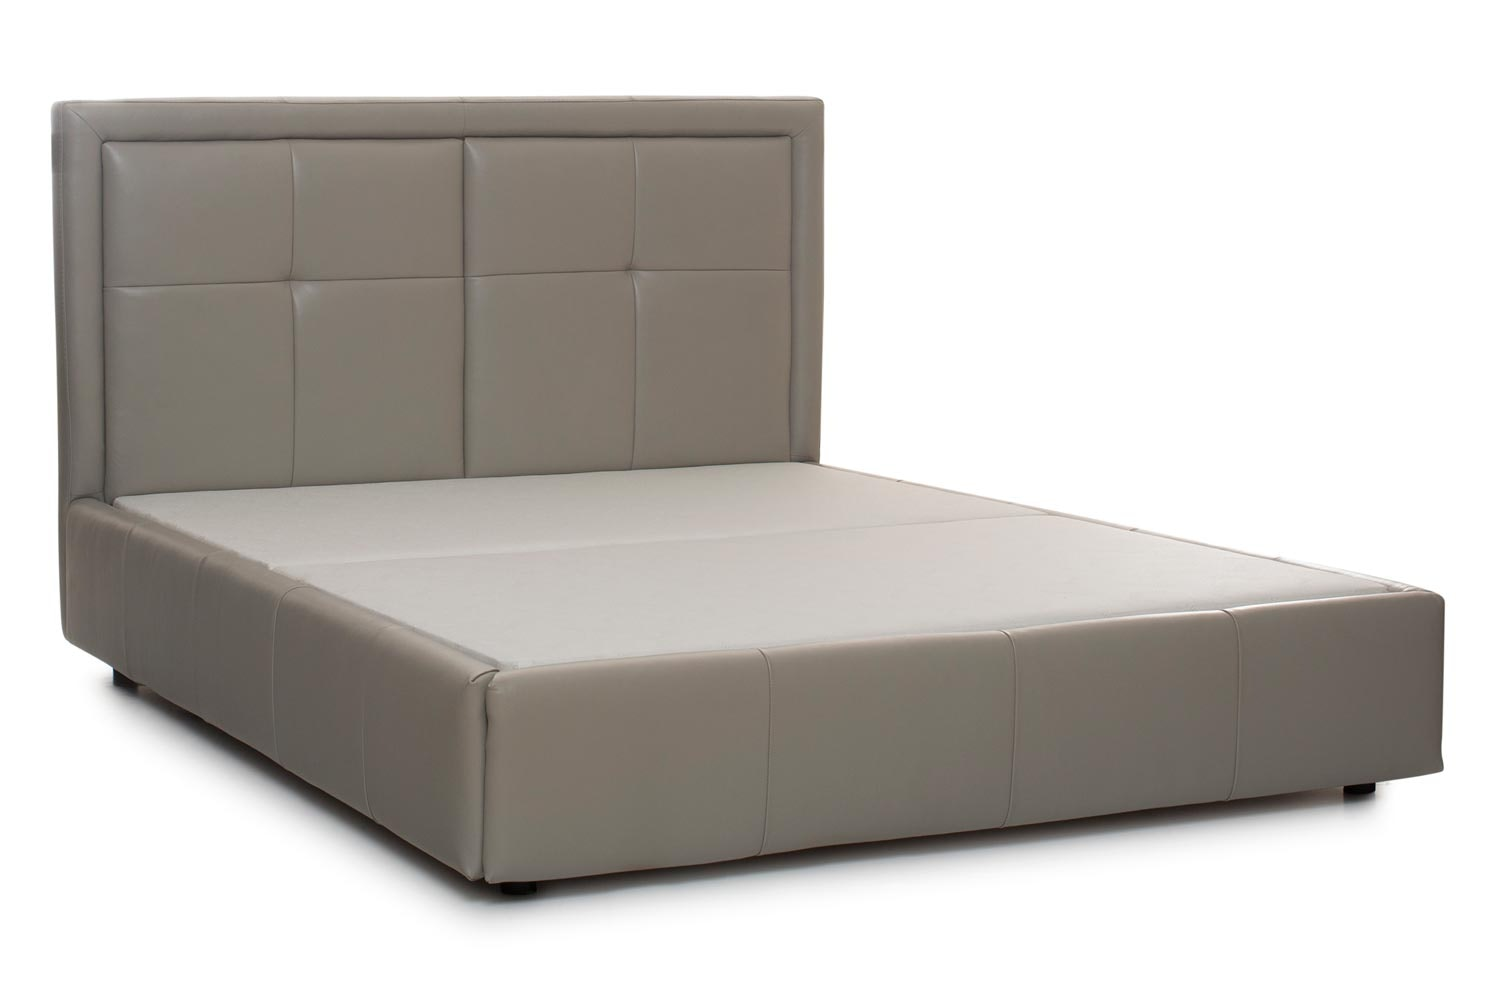 Sheraton Bed| 6FT | Taupe